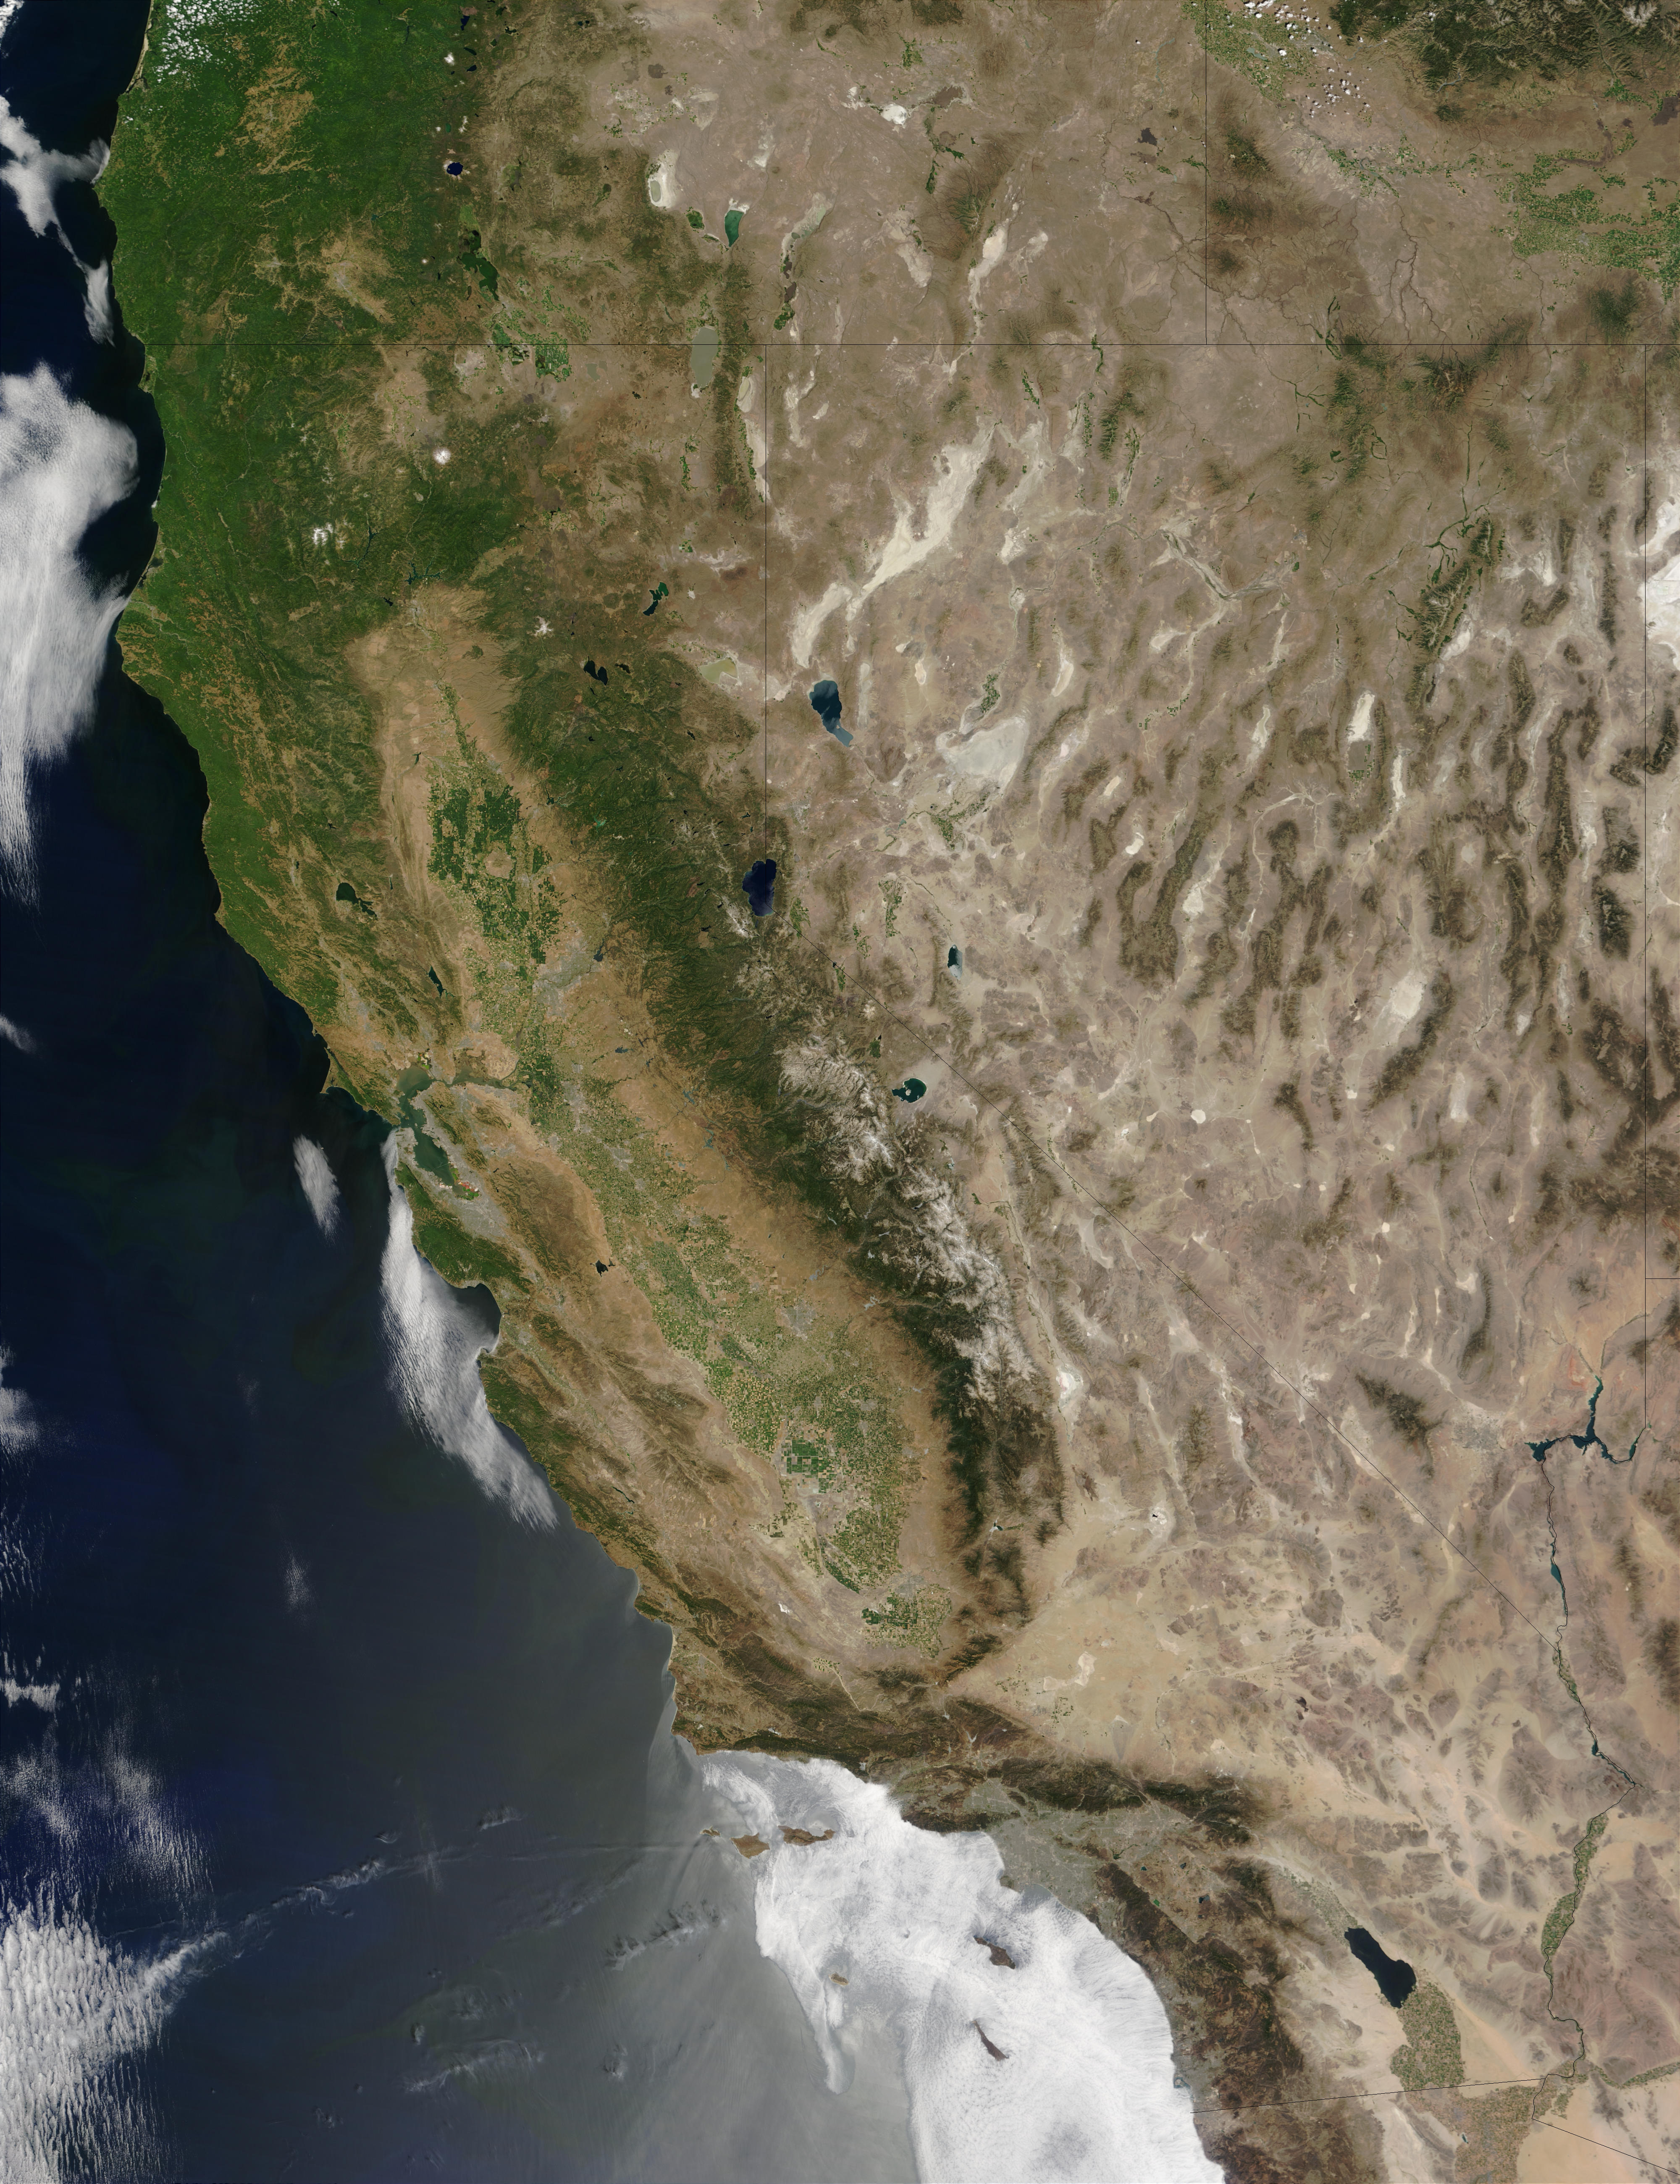 View Php California River Map Satellite Map California California - Satellite Map Of California